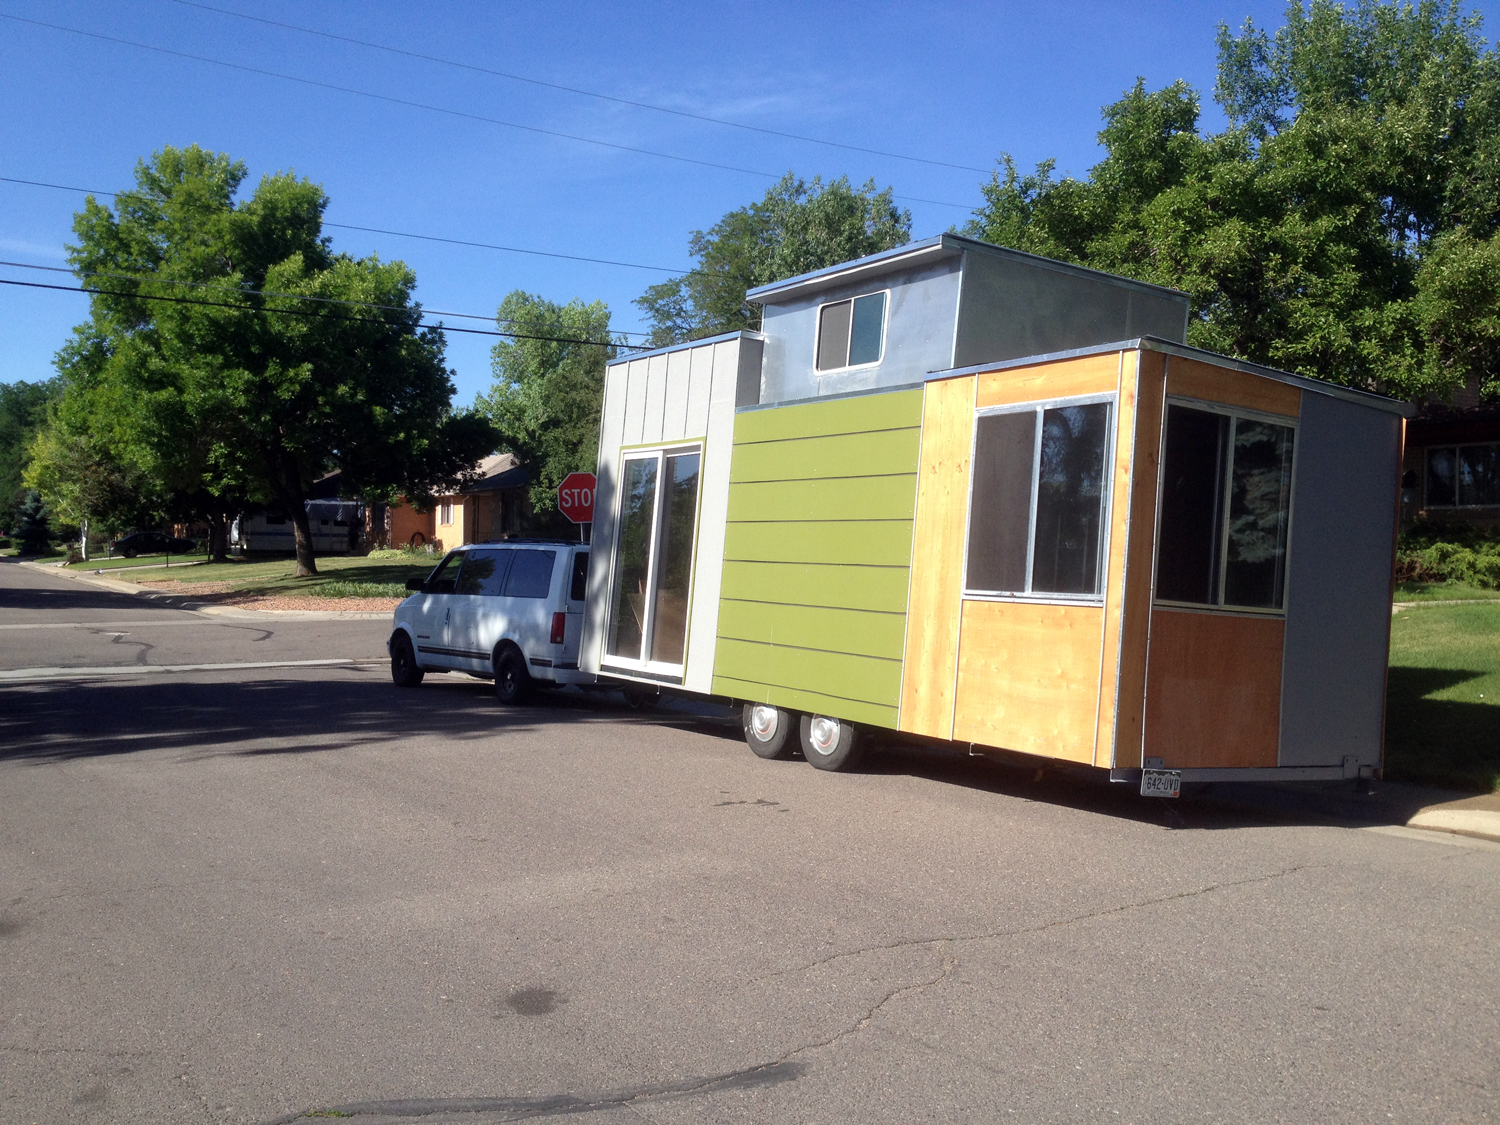 The adventure of turning an old camper into a tiny house on wheels